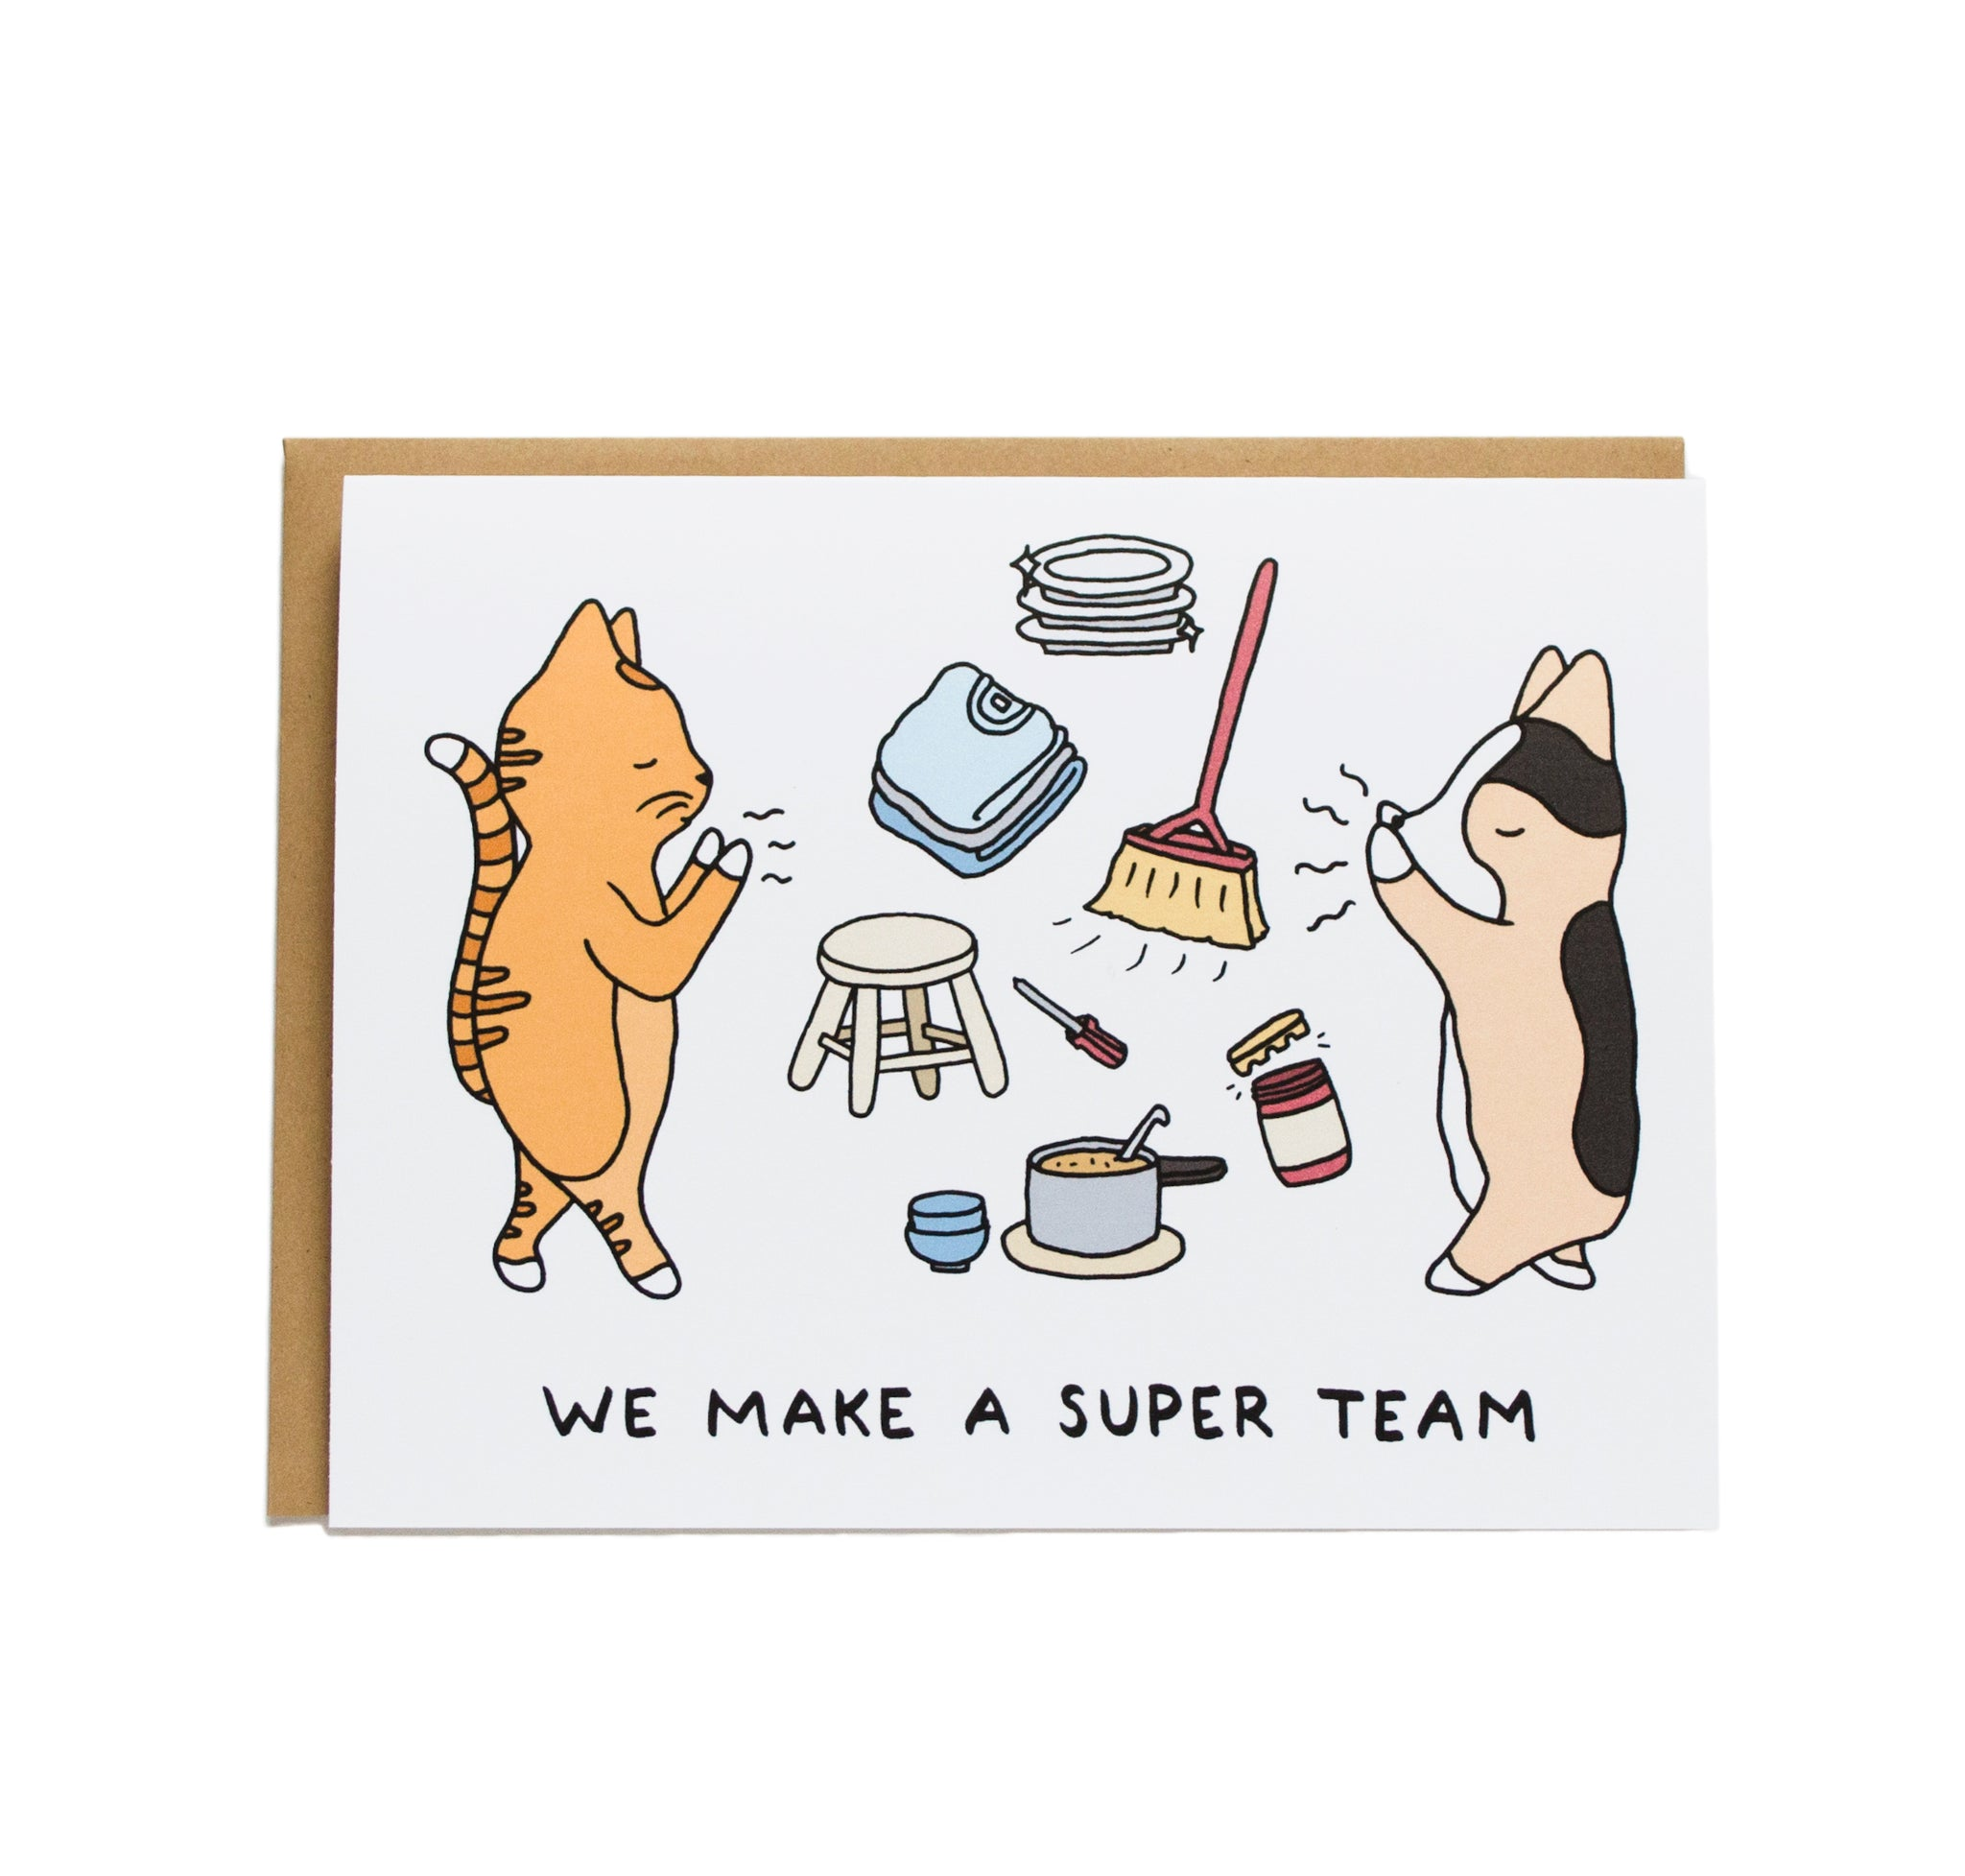 corgi and cat super powers, laundry, cleaning, cooking, dishes, and card reads We make a super team